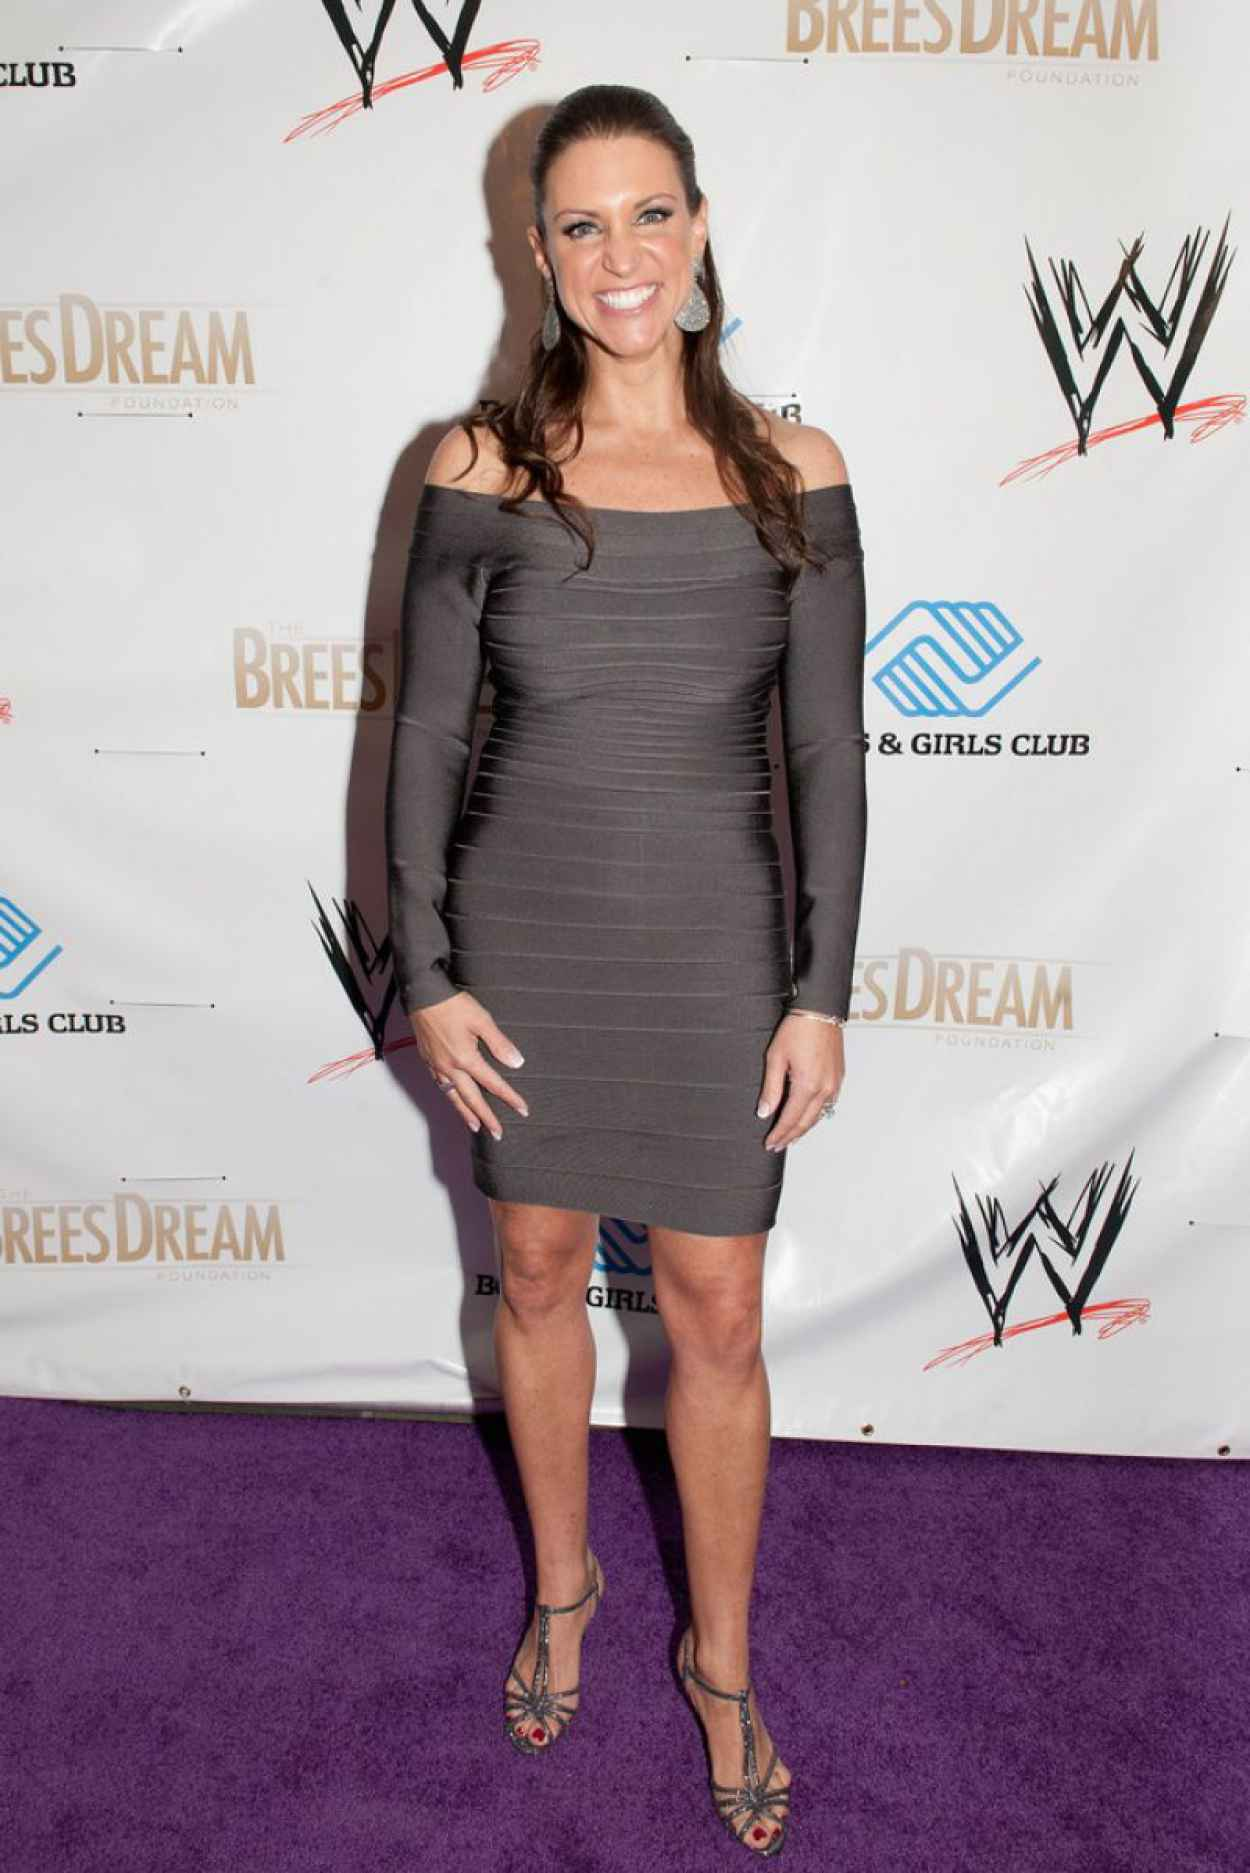 Stephanie McMahon Leggy in a Tight Dress - WWE Superstars for Kids Event - April 2015-3